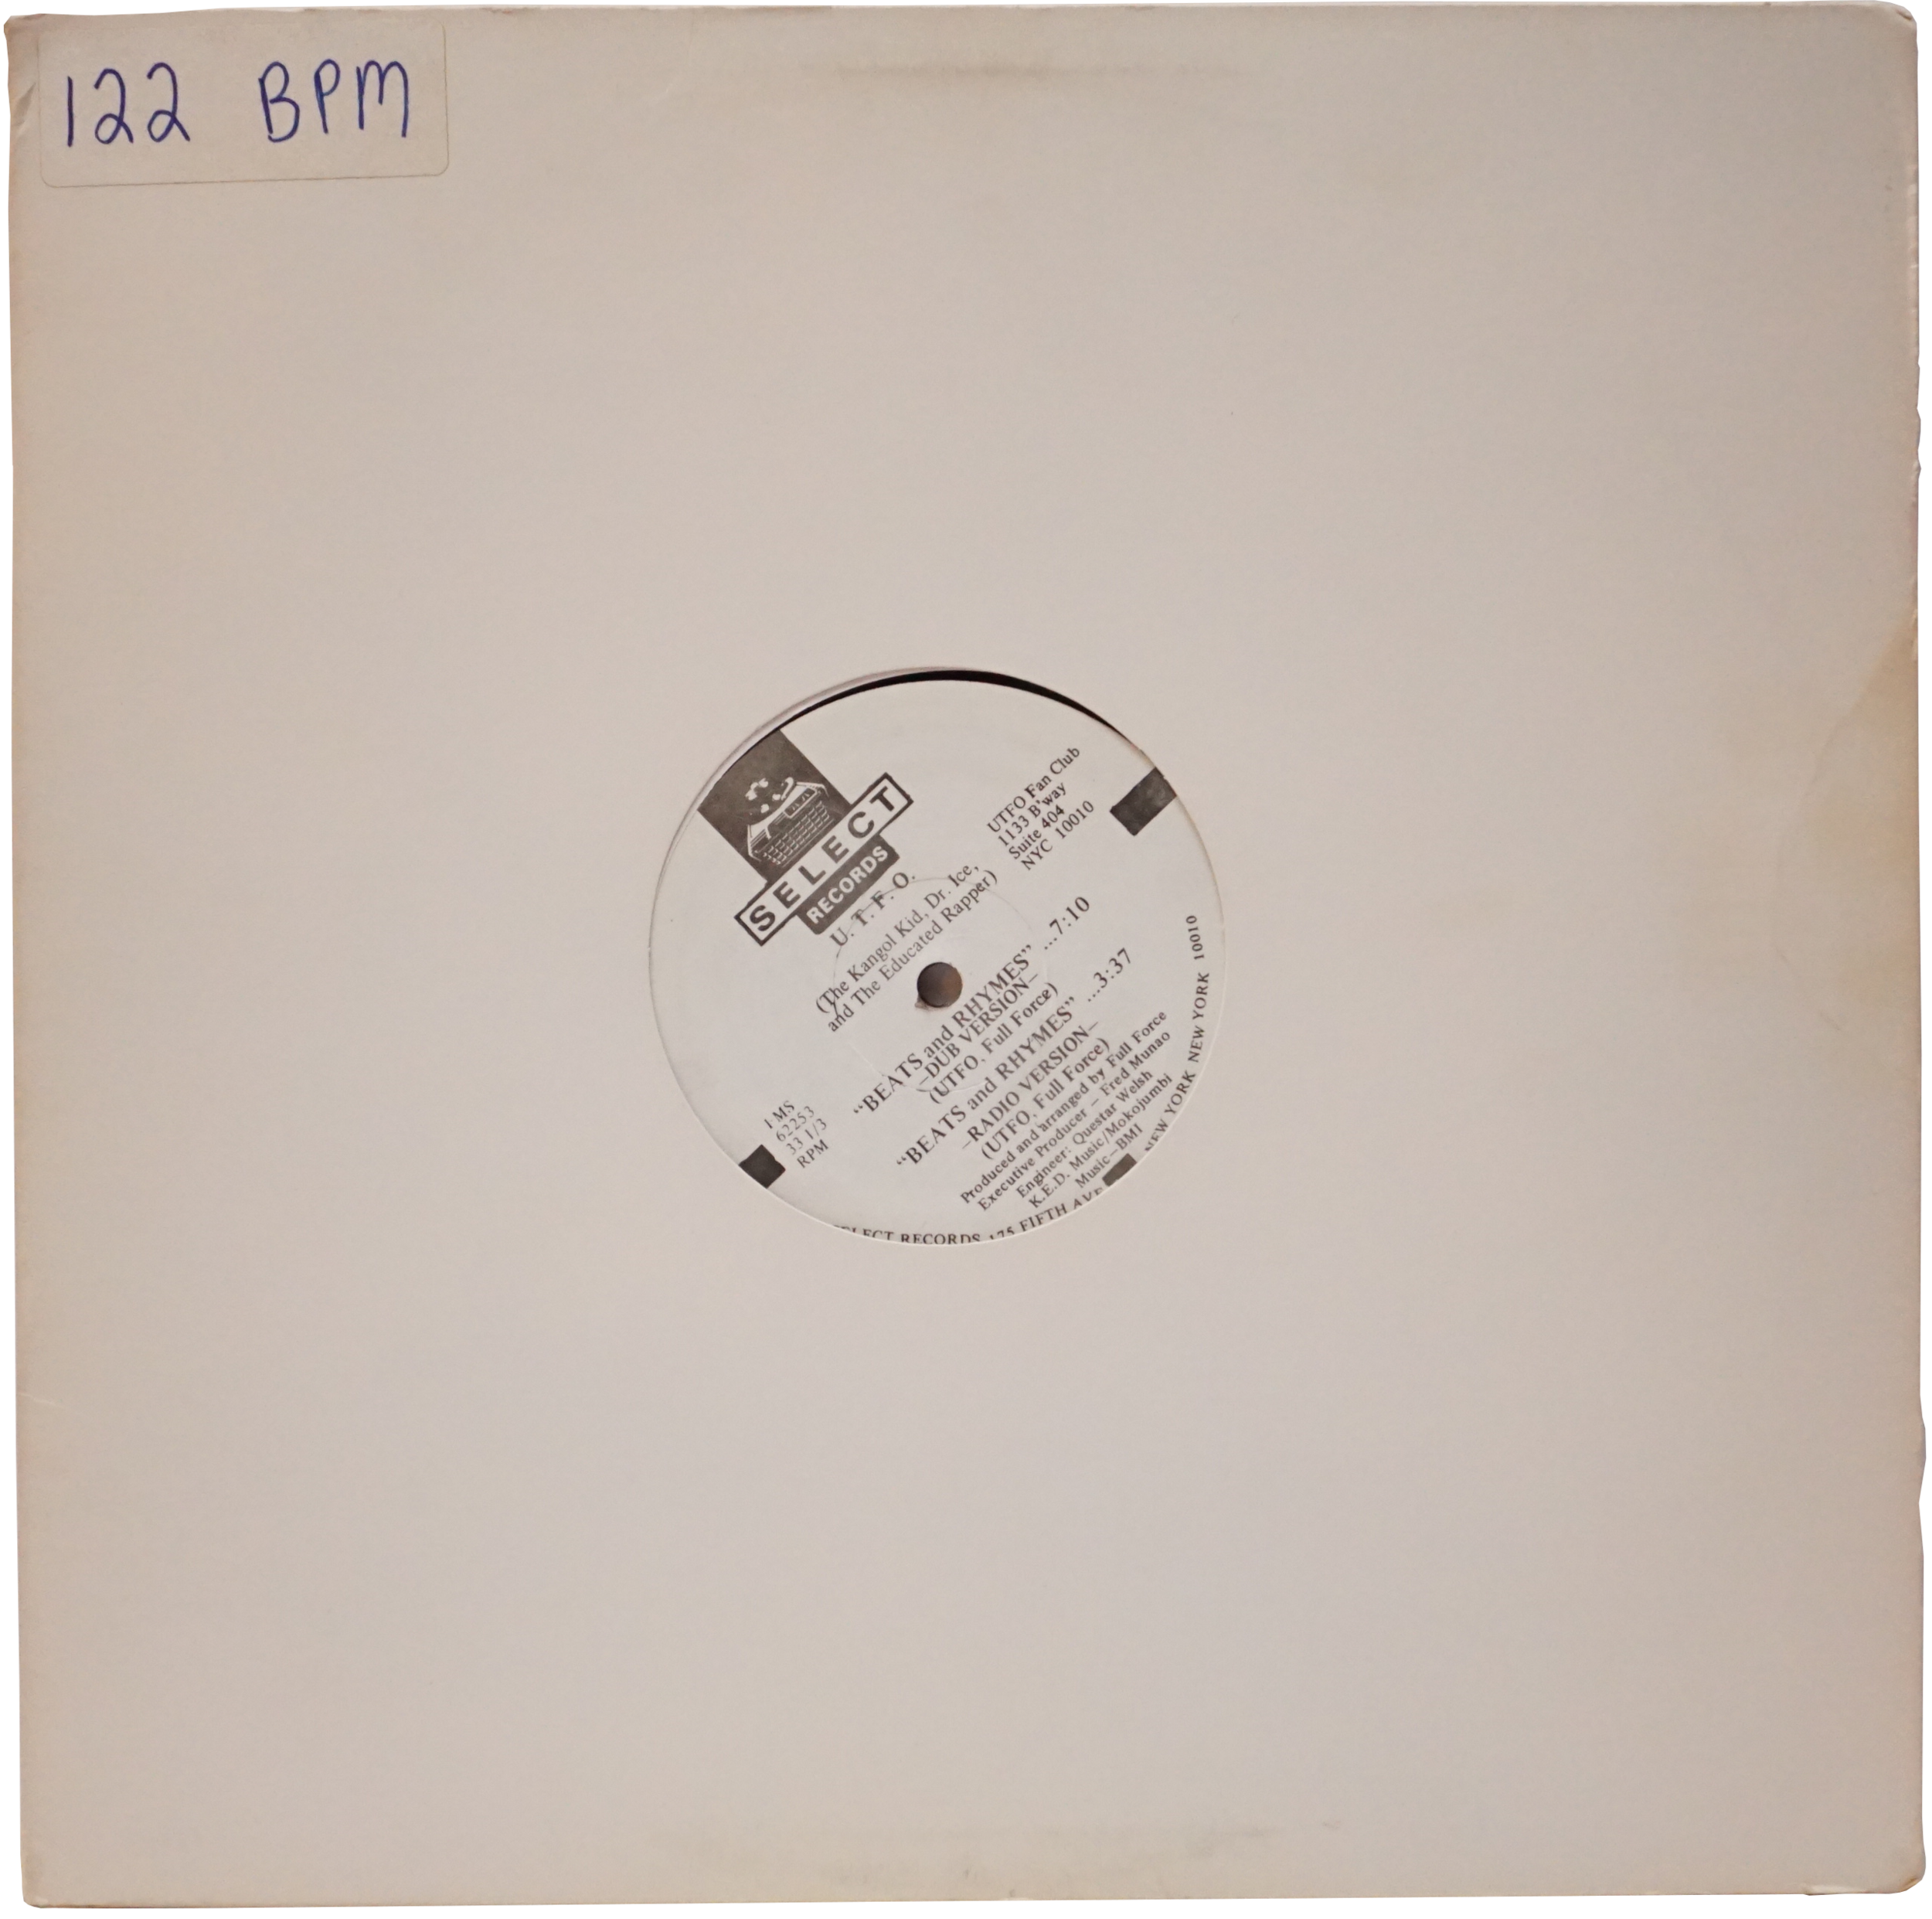 WLWLTDOO-1984-12-UTFO-BEATS_AND_RHYMES-A-FMS62241.png